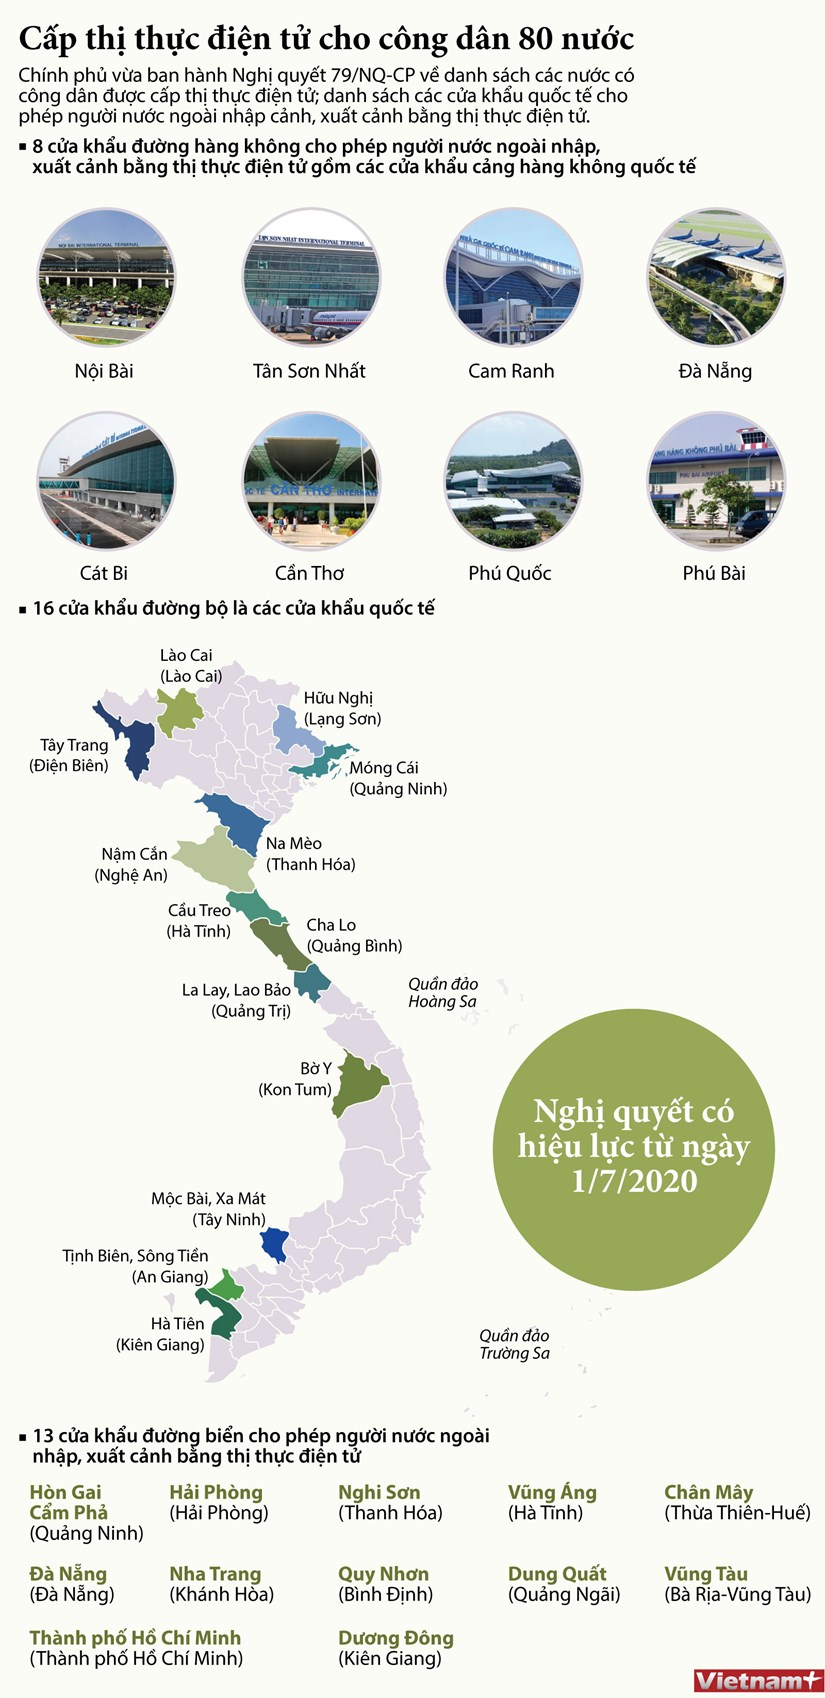 [Infographics] Cap thi thuc dien tu cho cong dan 80 nuoc hinh anh 1